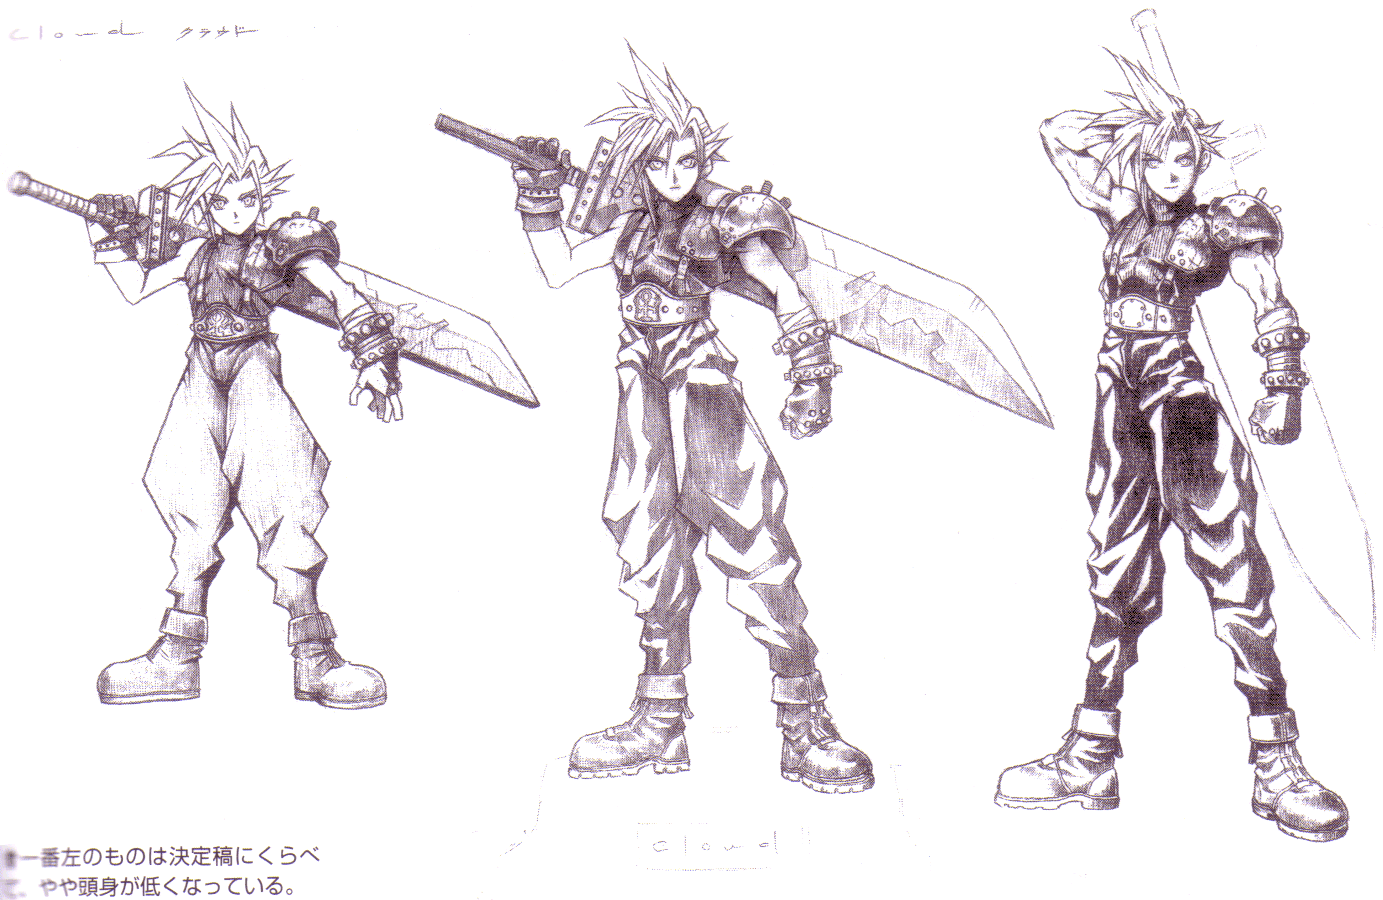 http://img3.wikia.nocookie.net/__cb20080714140340/finalfantasy/images/archive/7/7c/20130202110320!Cloud_Strife_Sketch.png